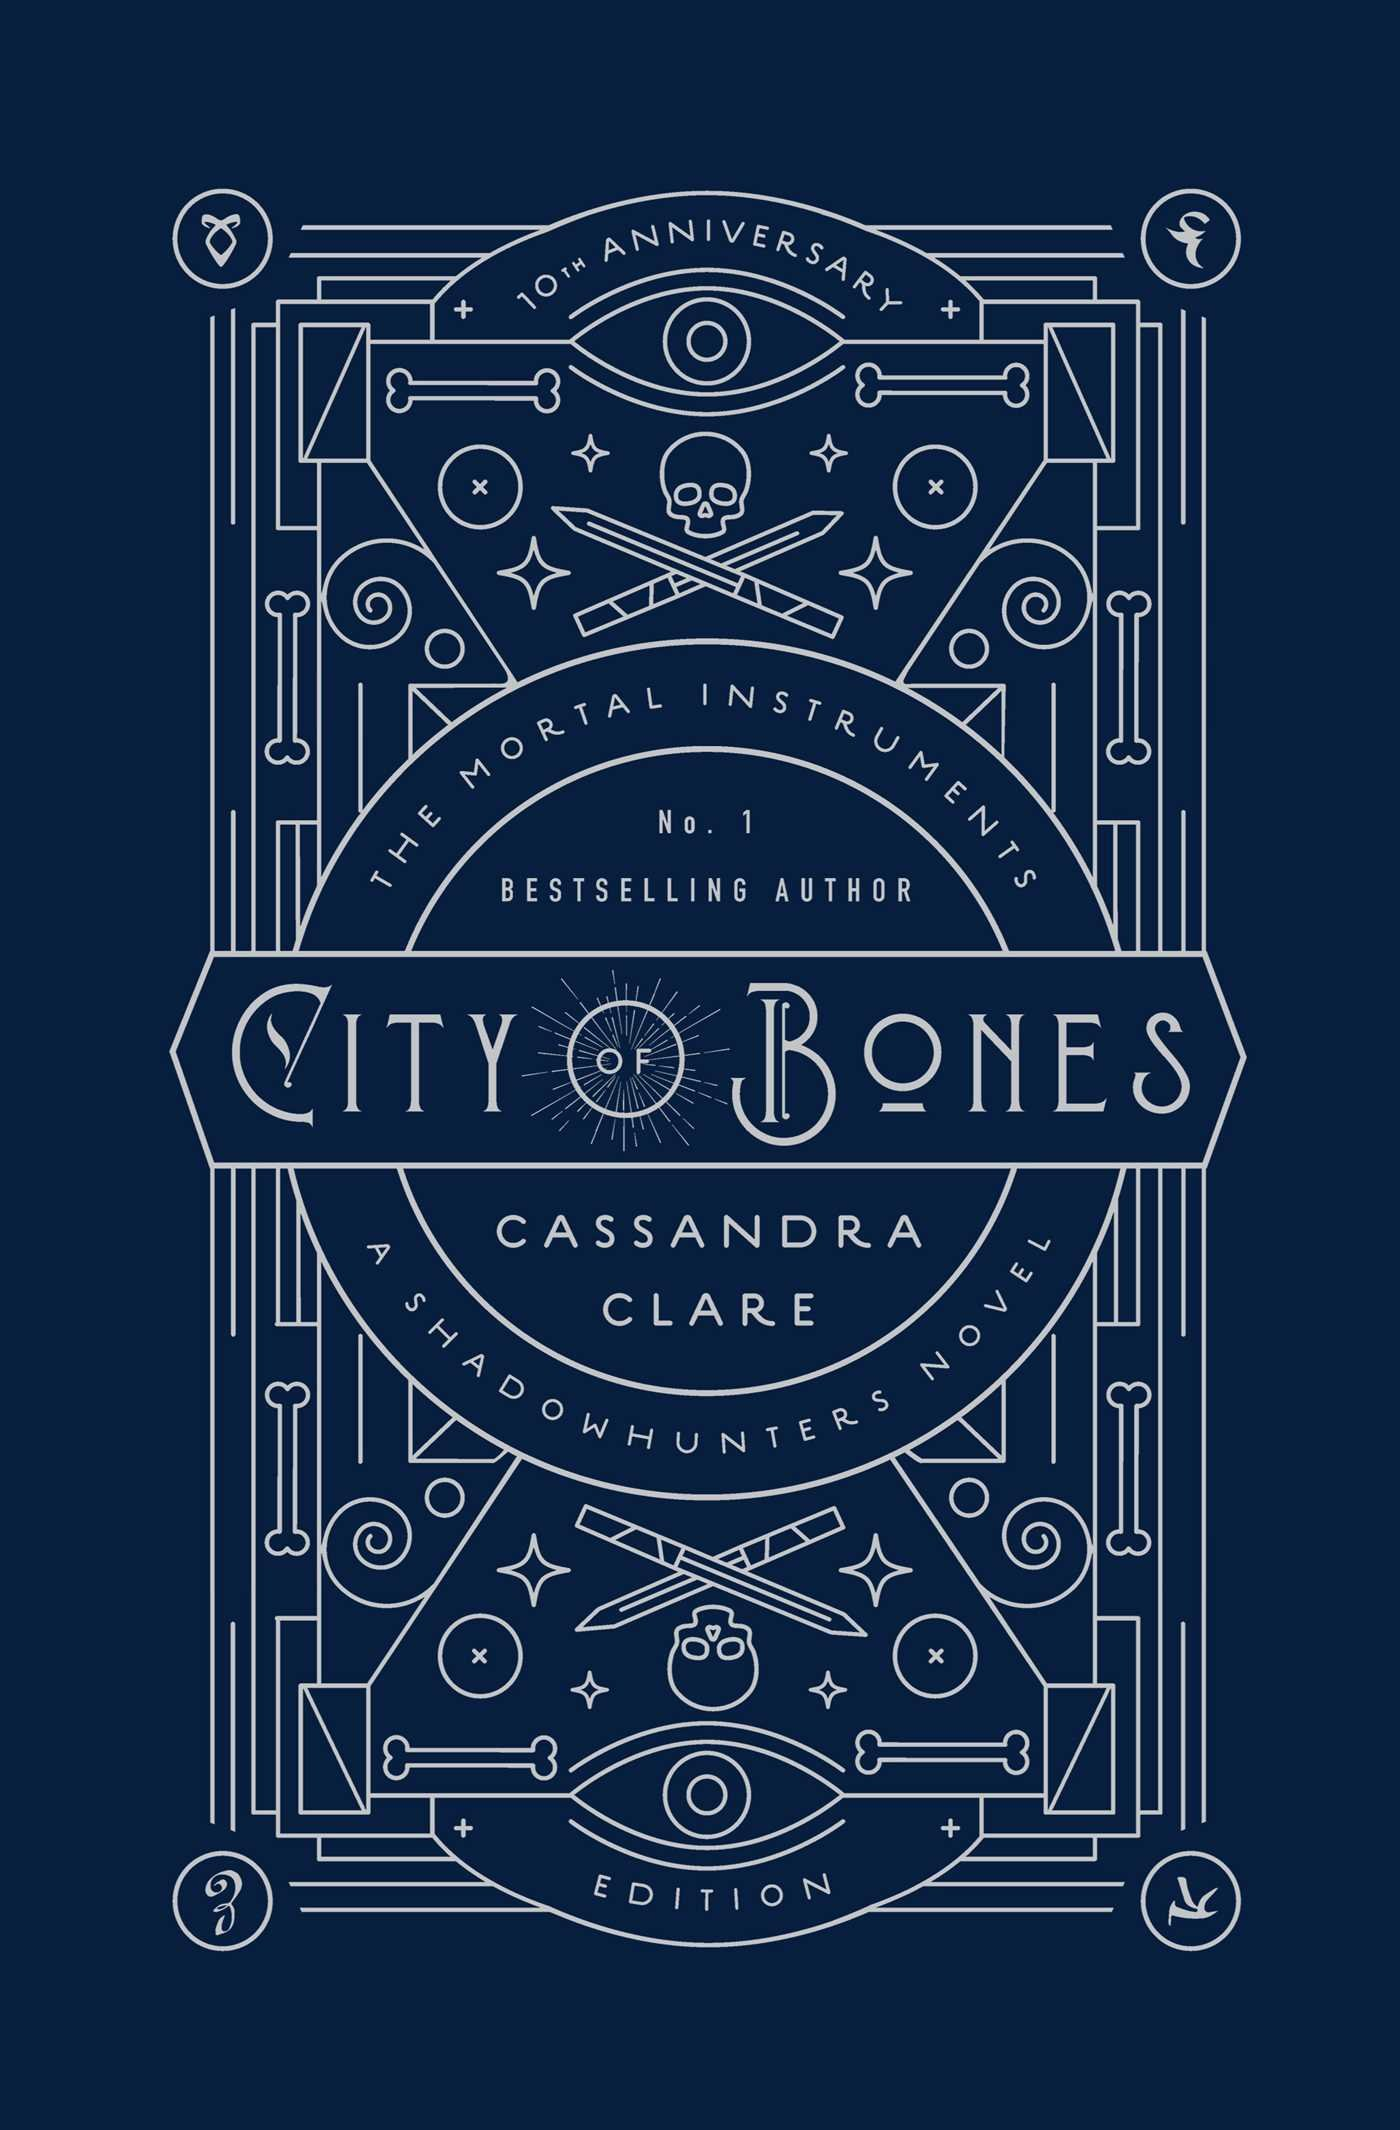 City of Bones: 10th Anniversary Edition